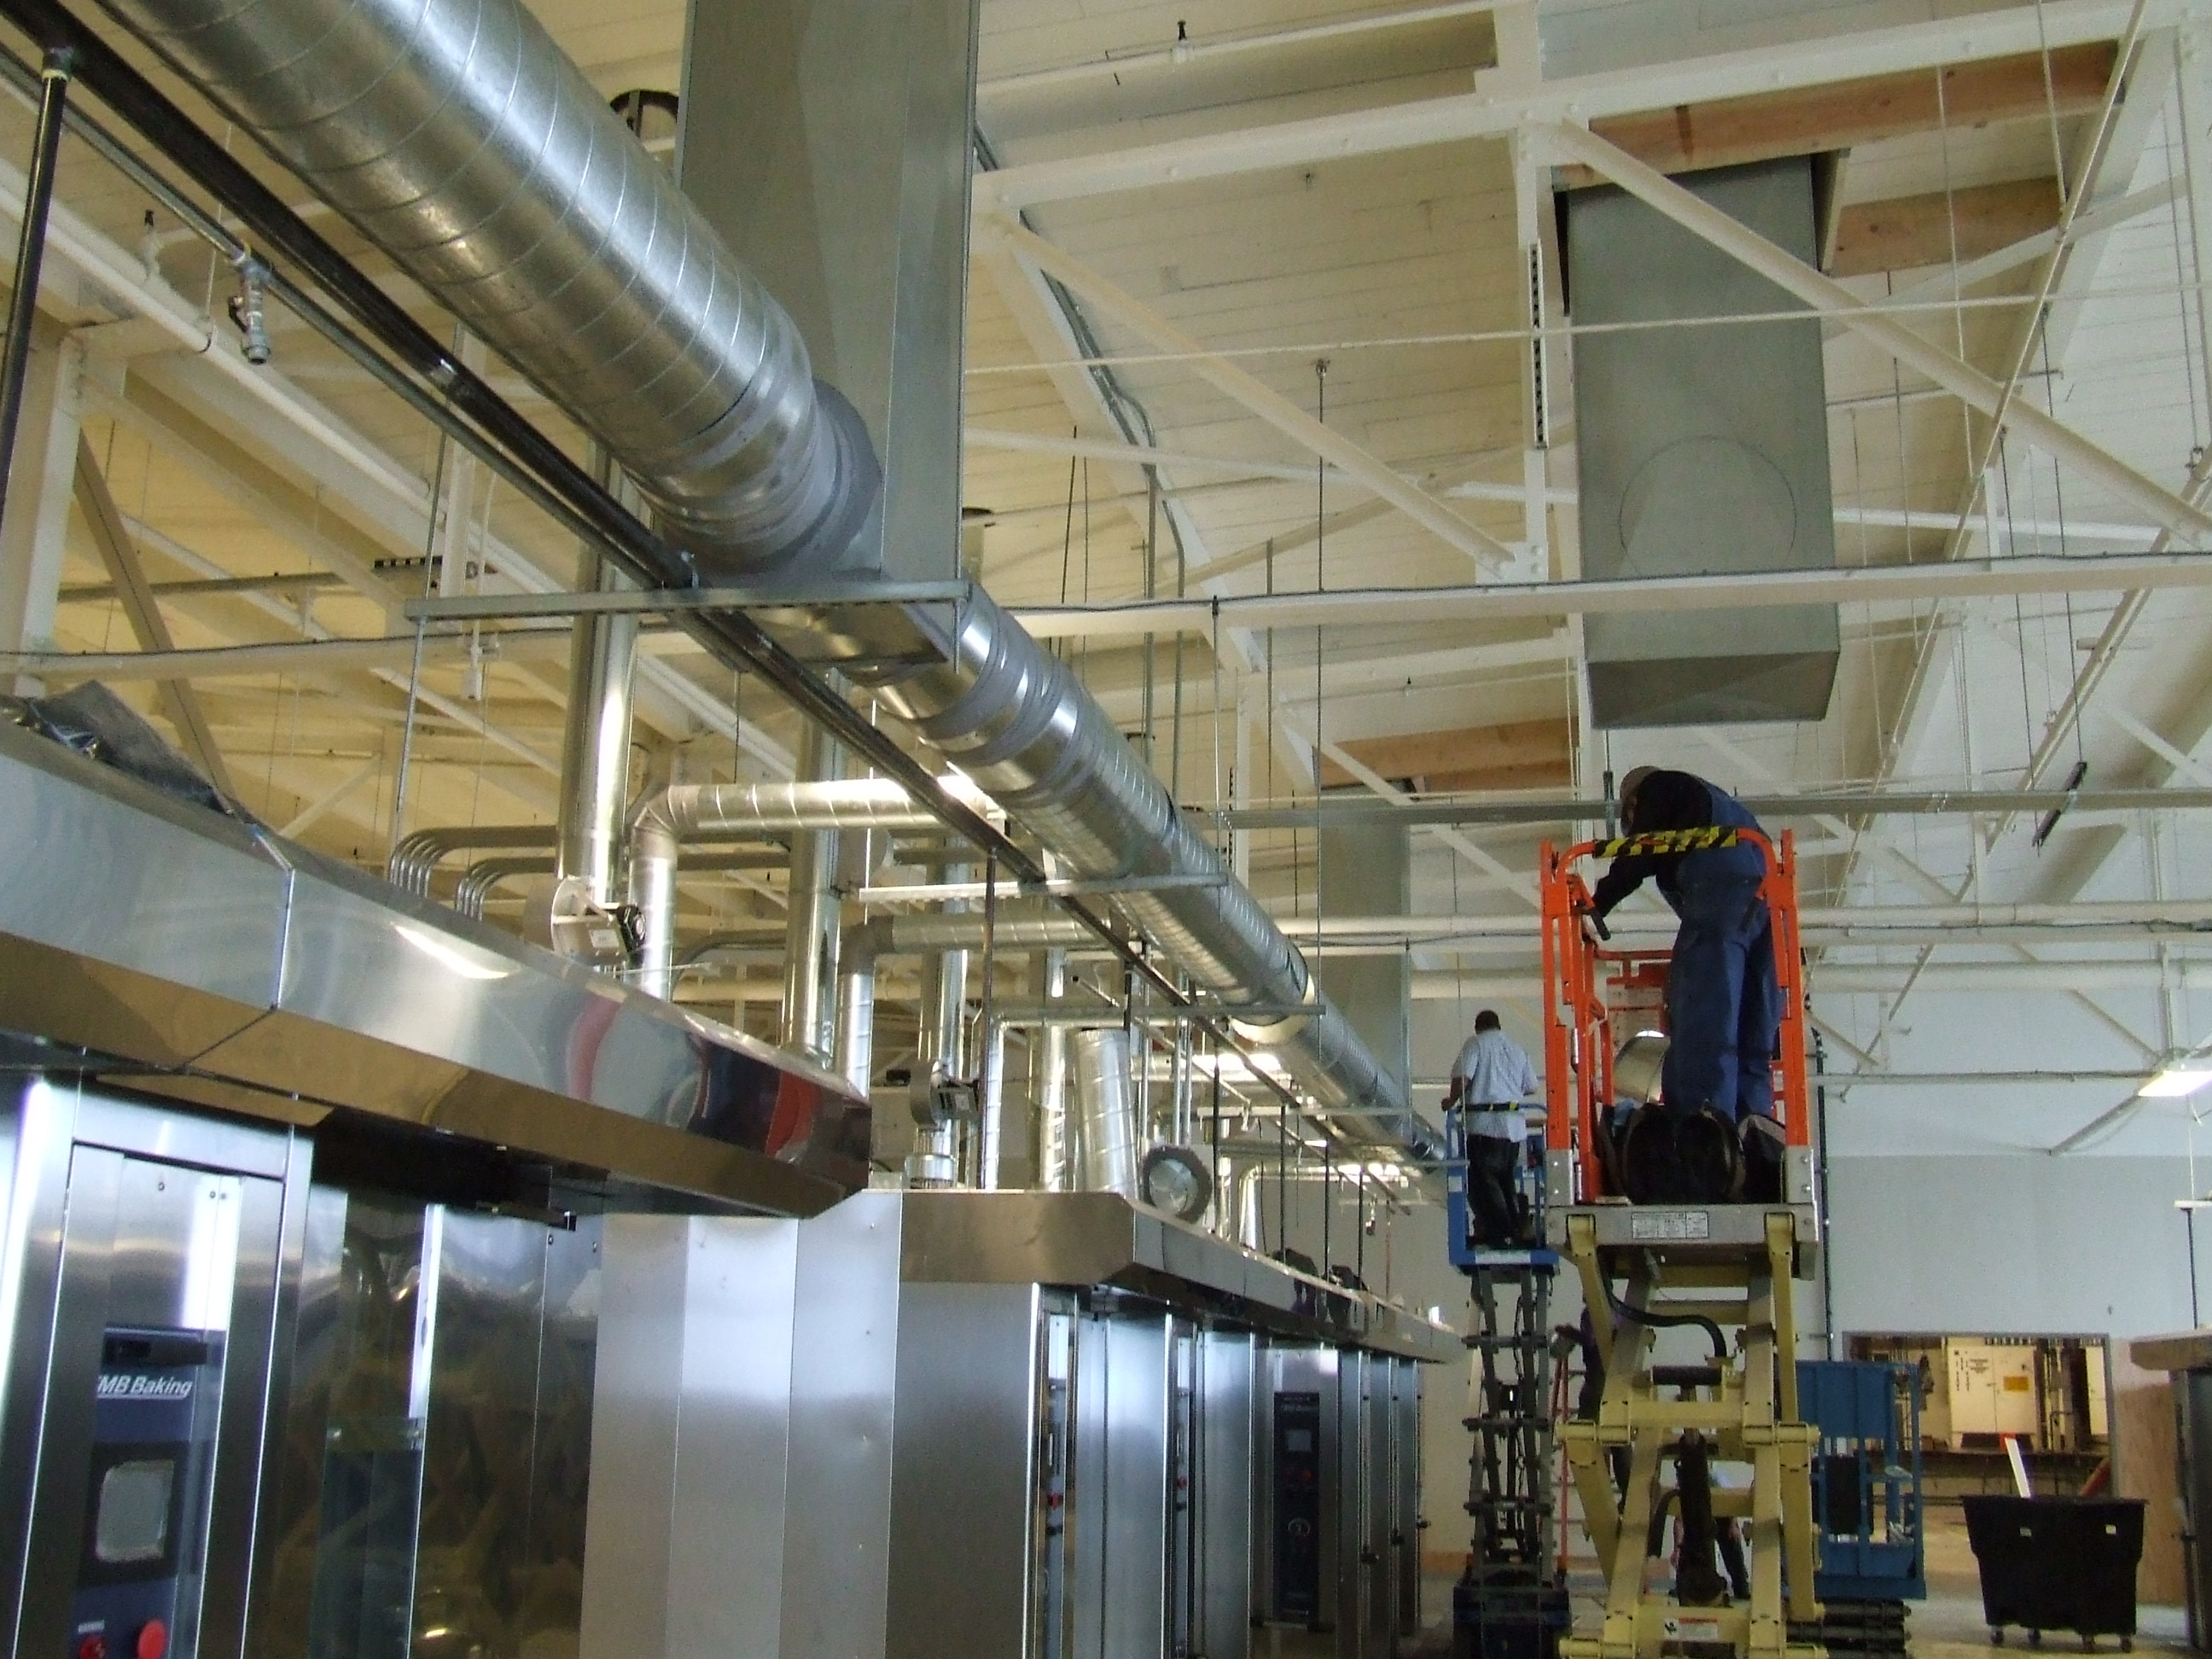 commercial heating and cooling | waltermork